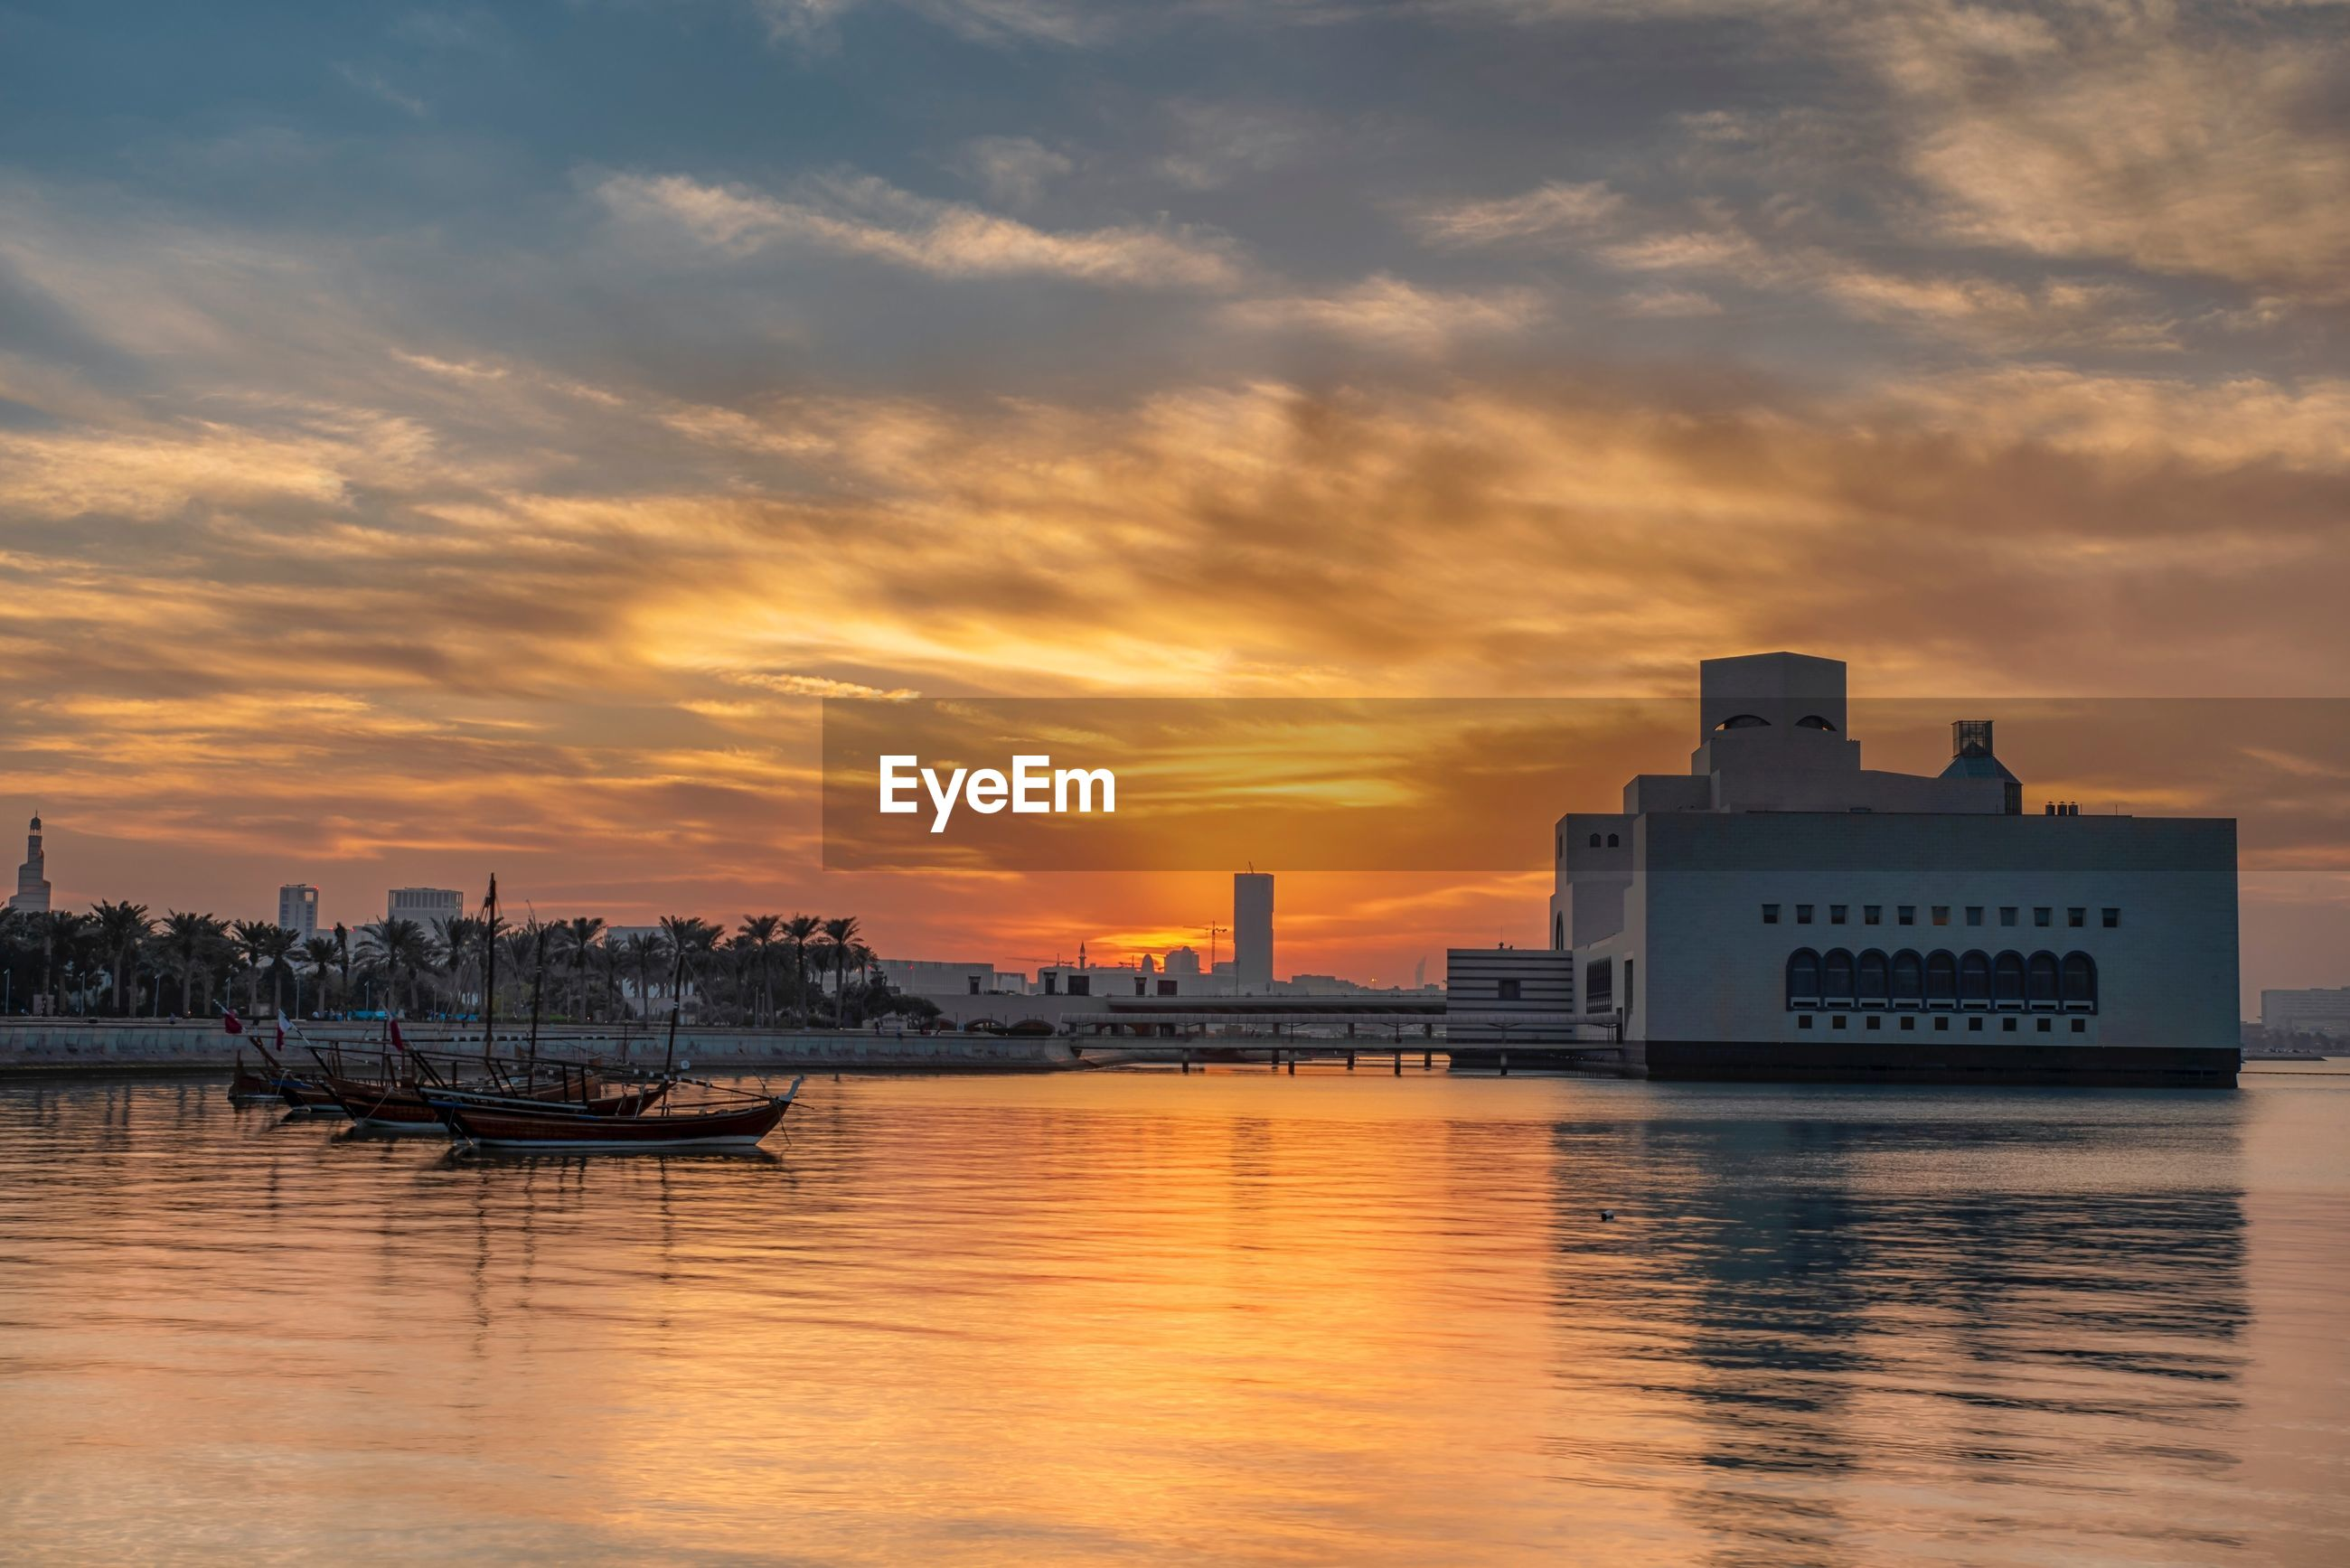 SCENIC VIEW OF RIVER BY CITY AGAINST ORANGE SKY